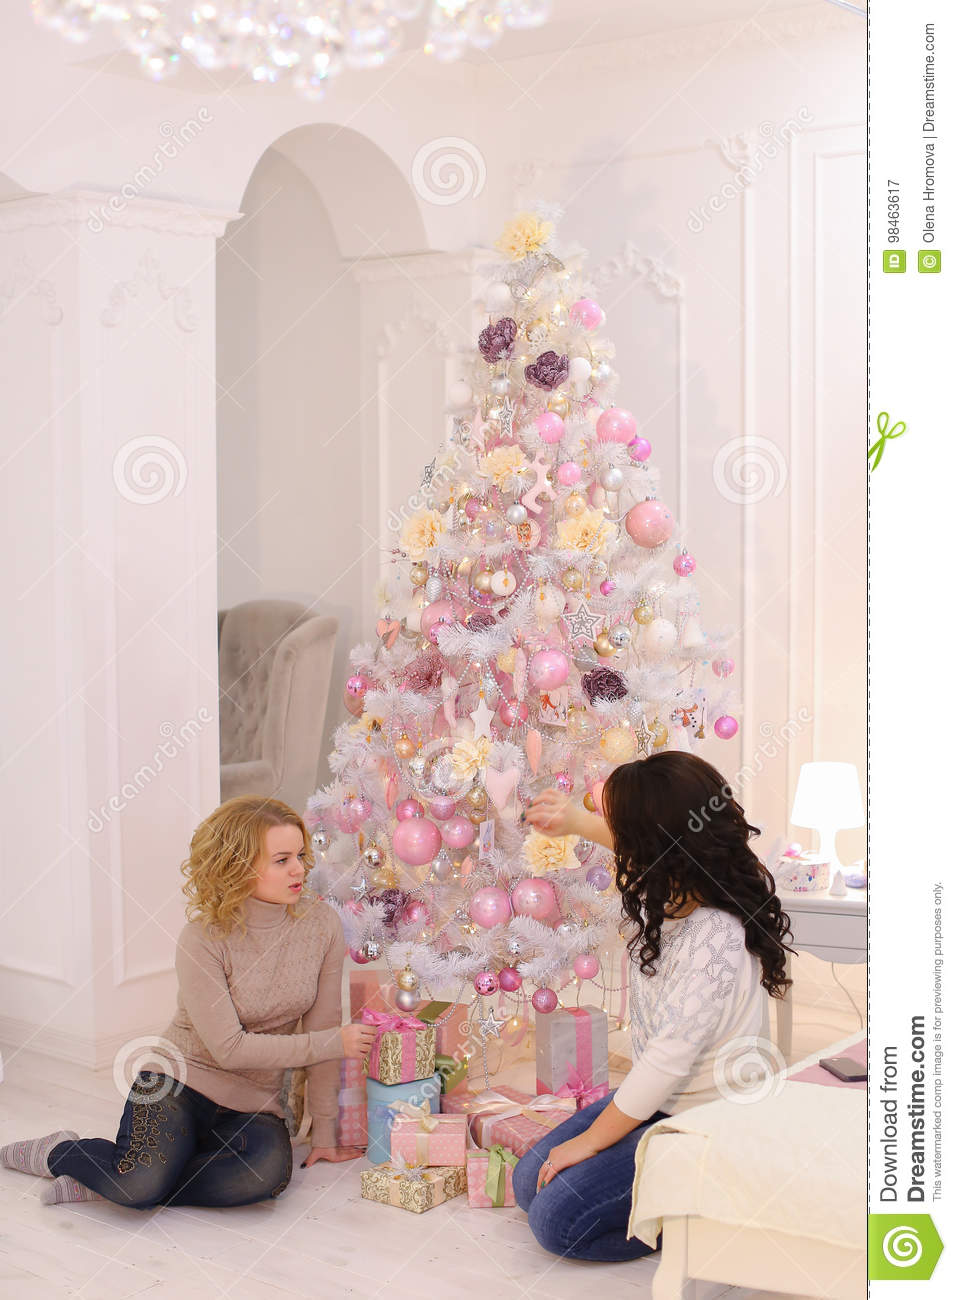 Two close friends share pleasant emotions and festive gifts, sit